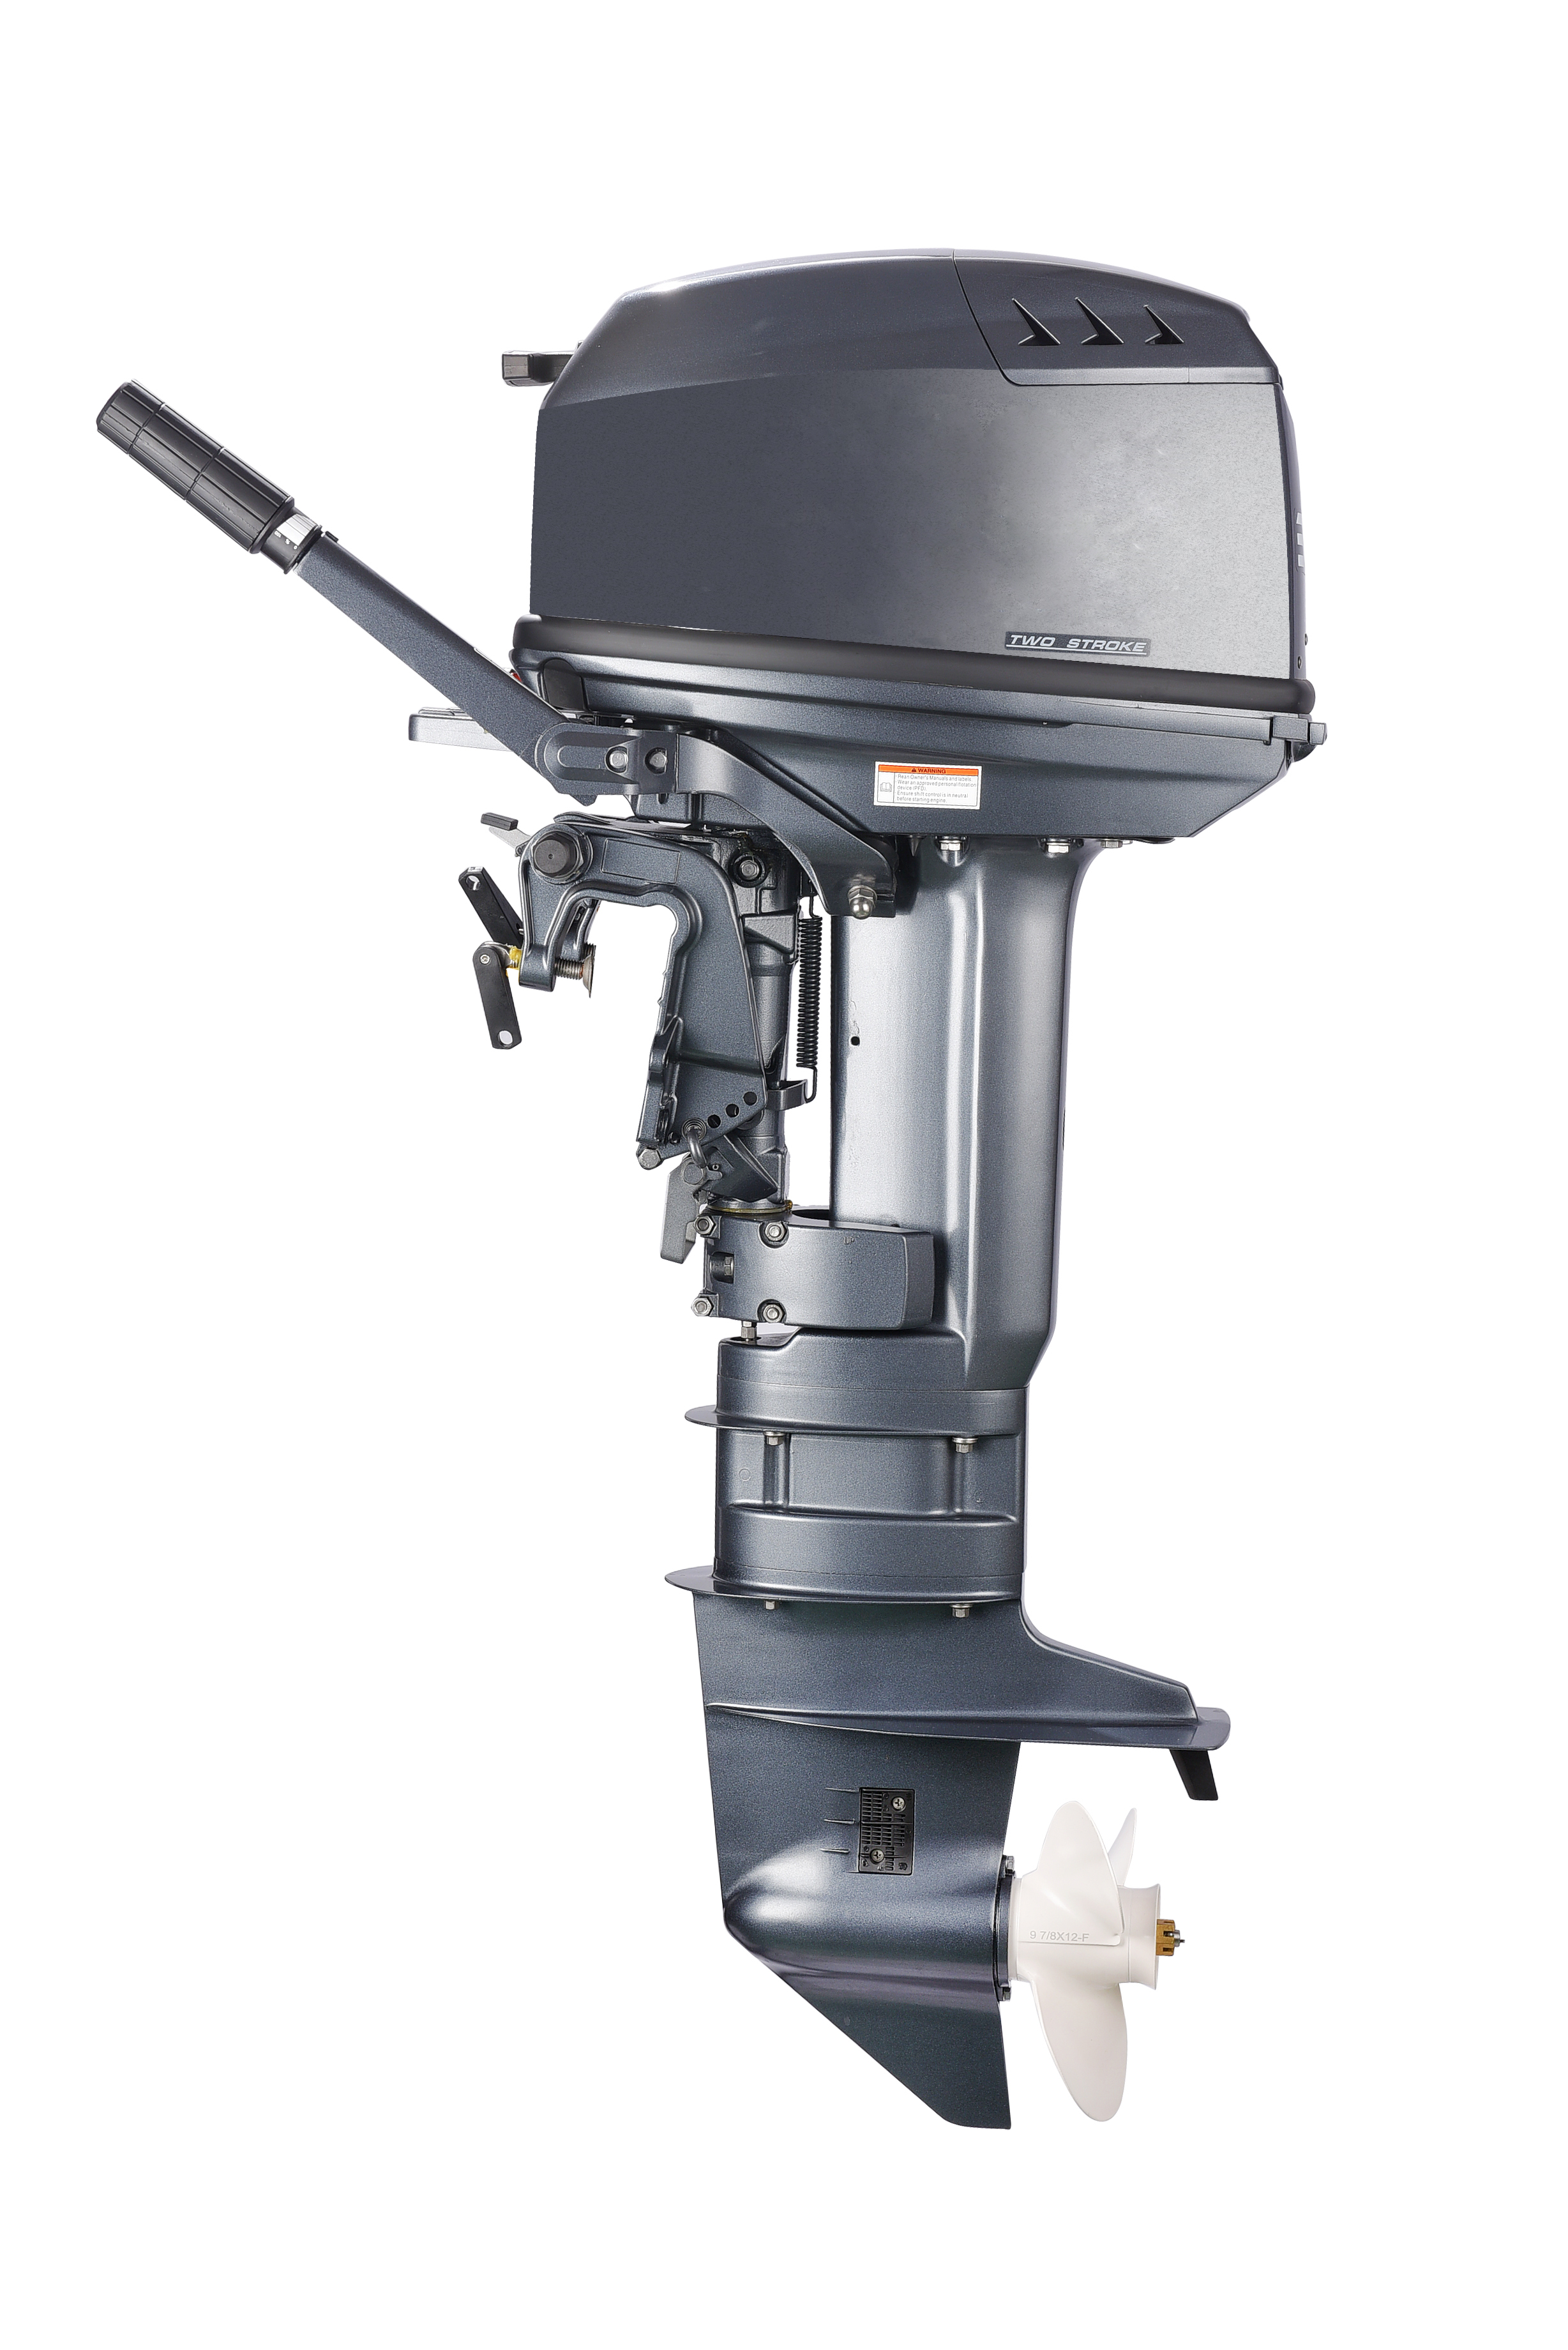 30 Hp Outboard Motors 2 Stroke For Sale Yamaha 30hwl